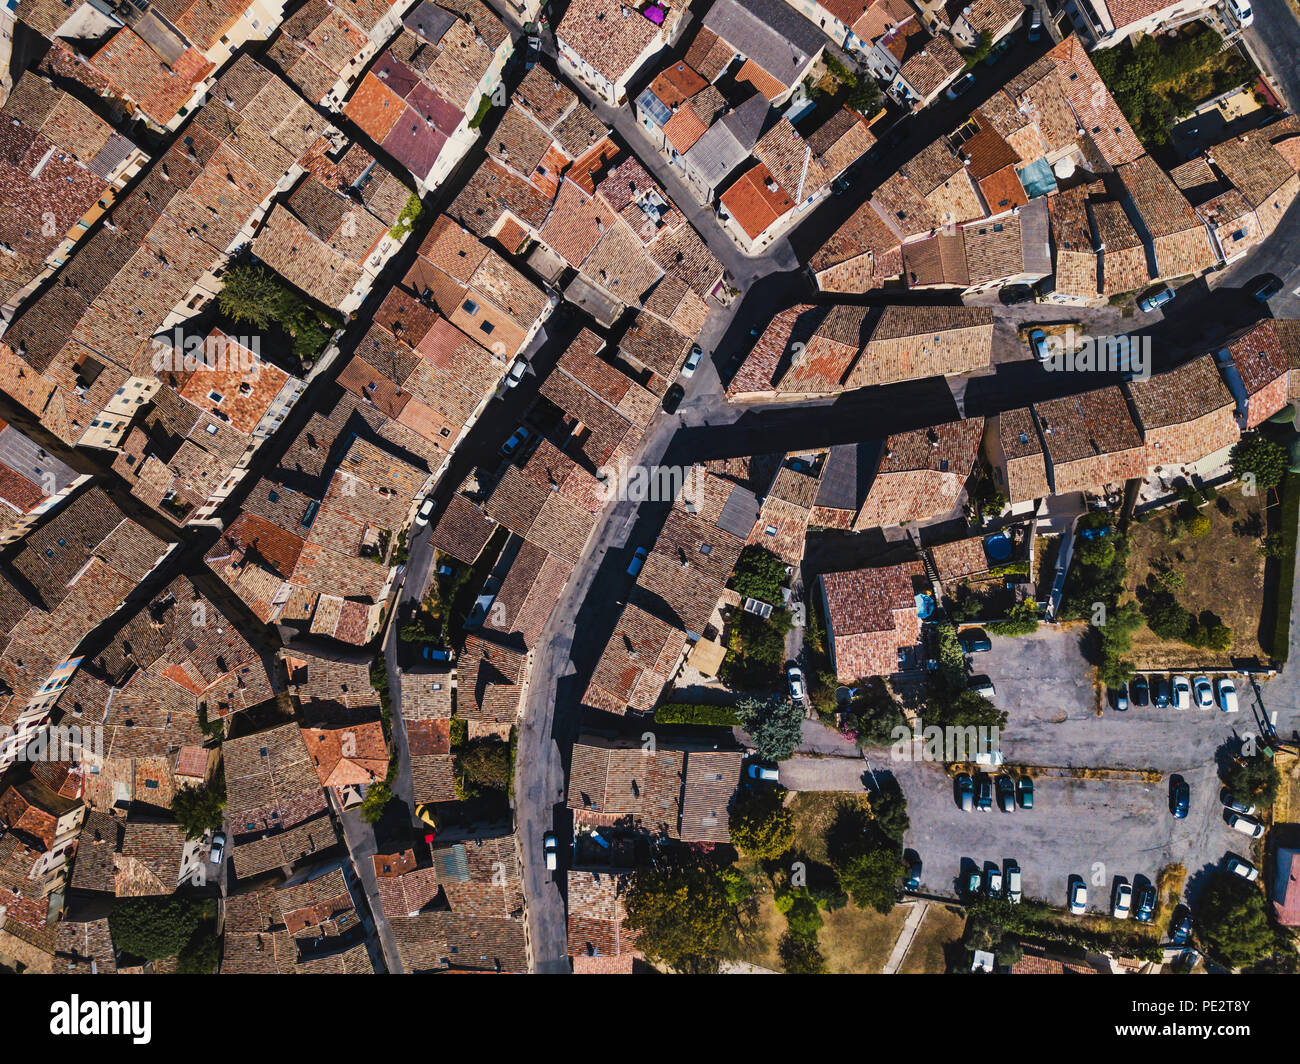 aerial view streets of village in Provence with tile roofs, travel to Europe, traditional architecture from drone - Stock Image